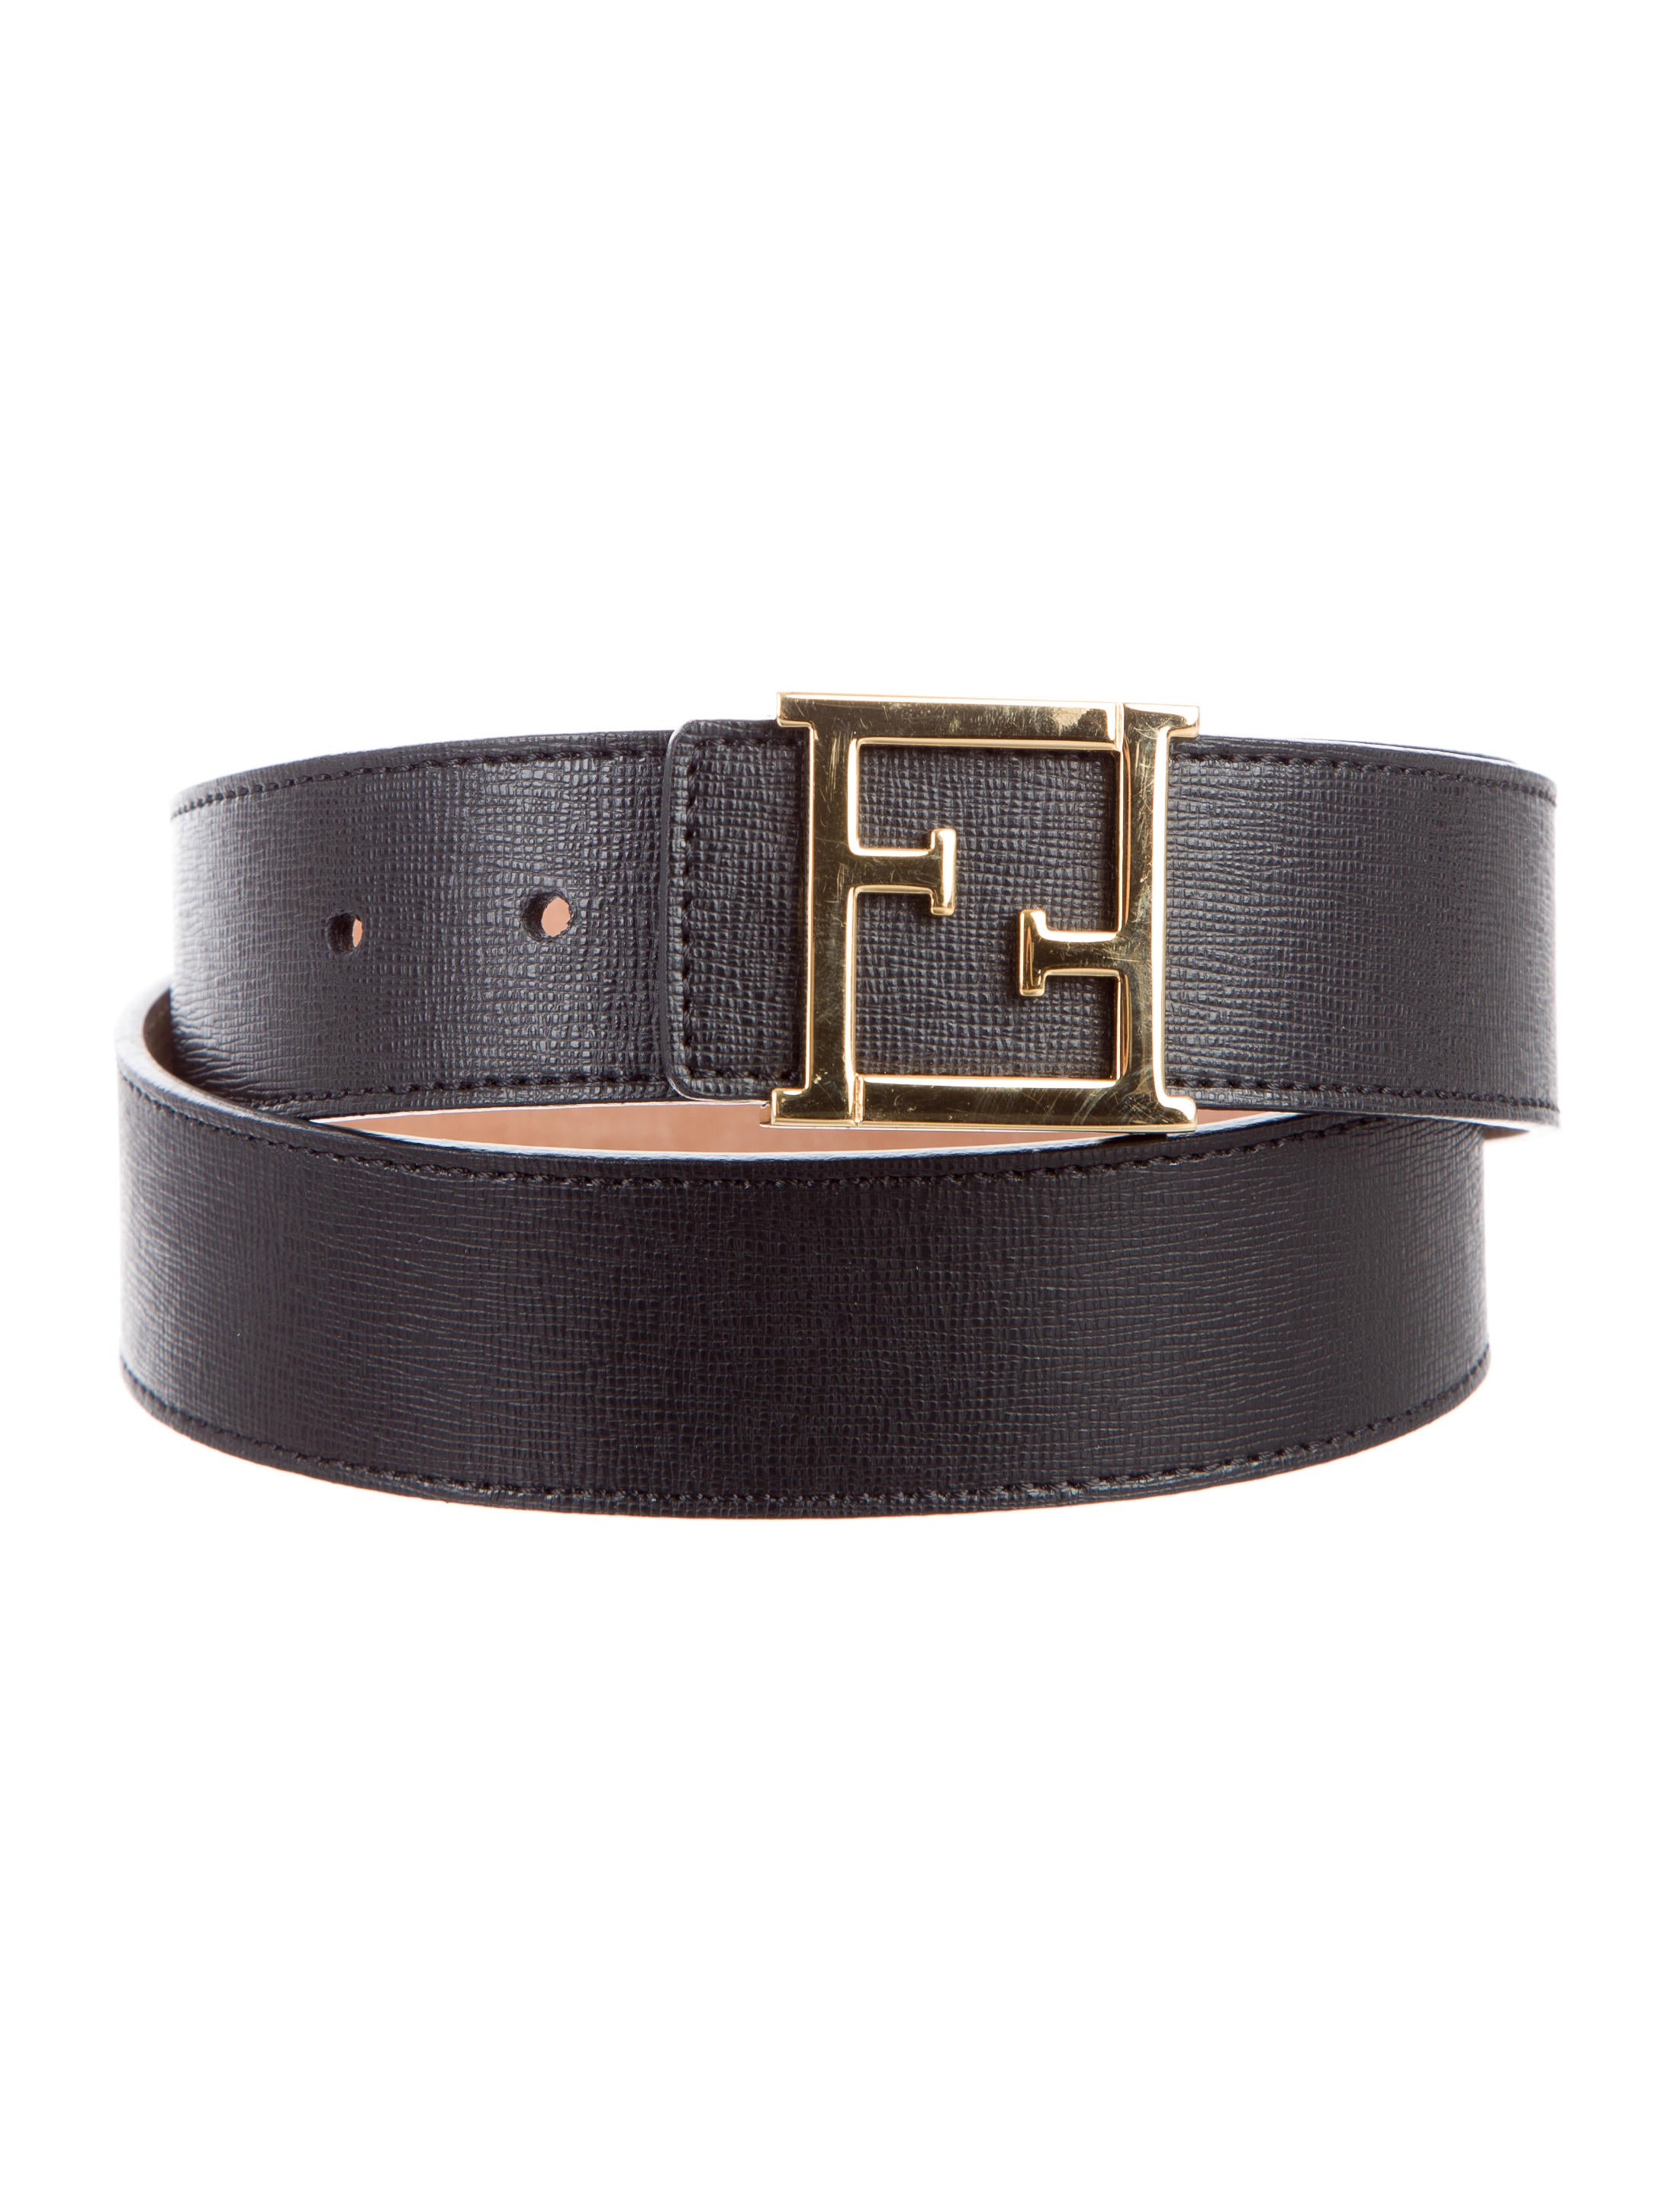 fendi leather logo belt accessories fen52785 the